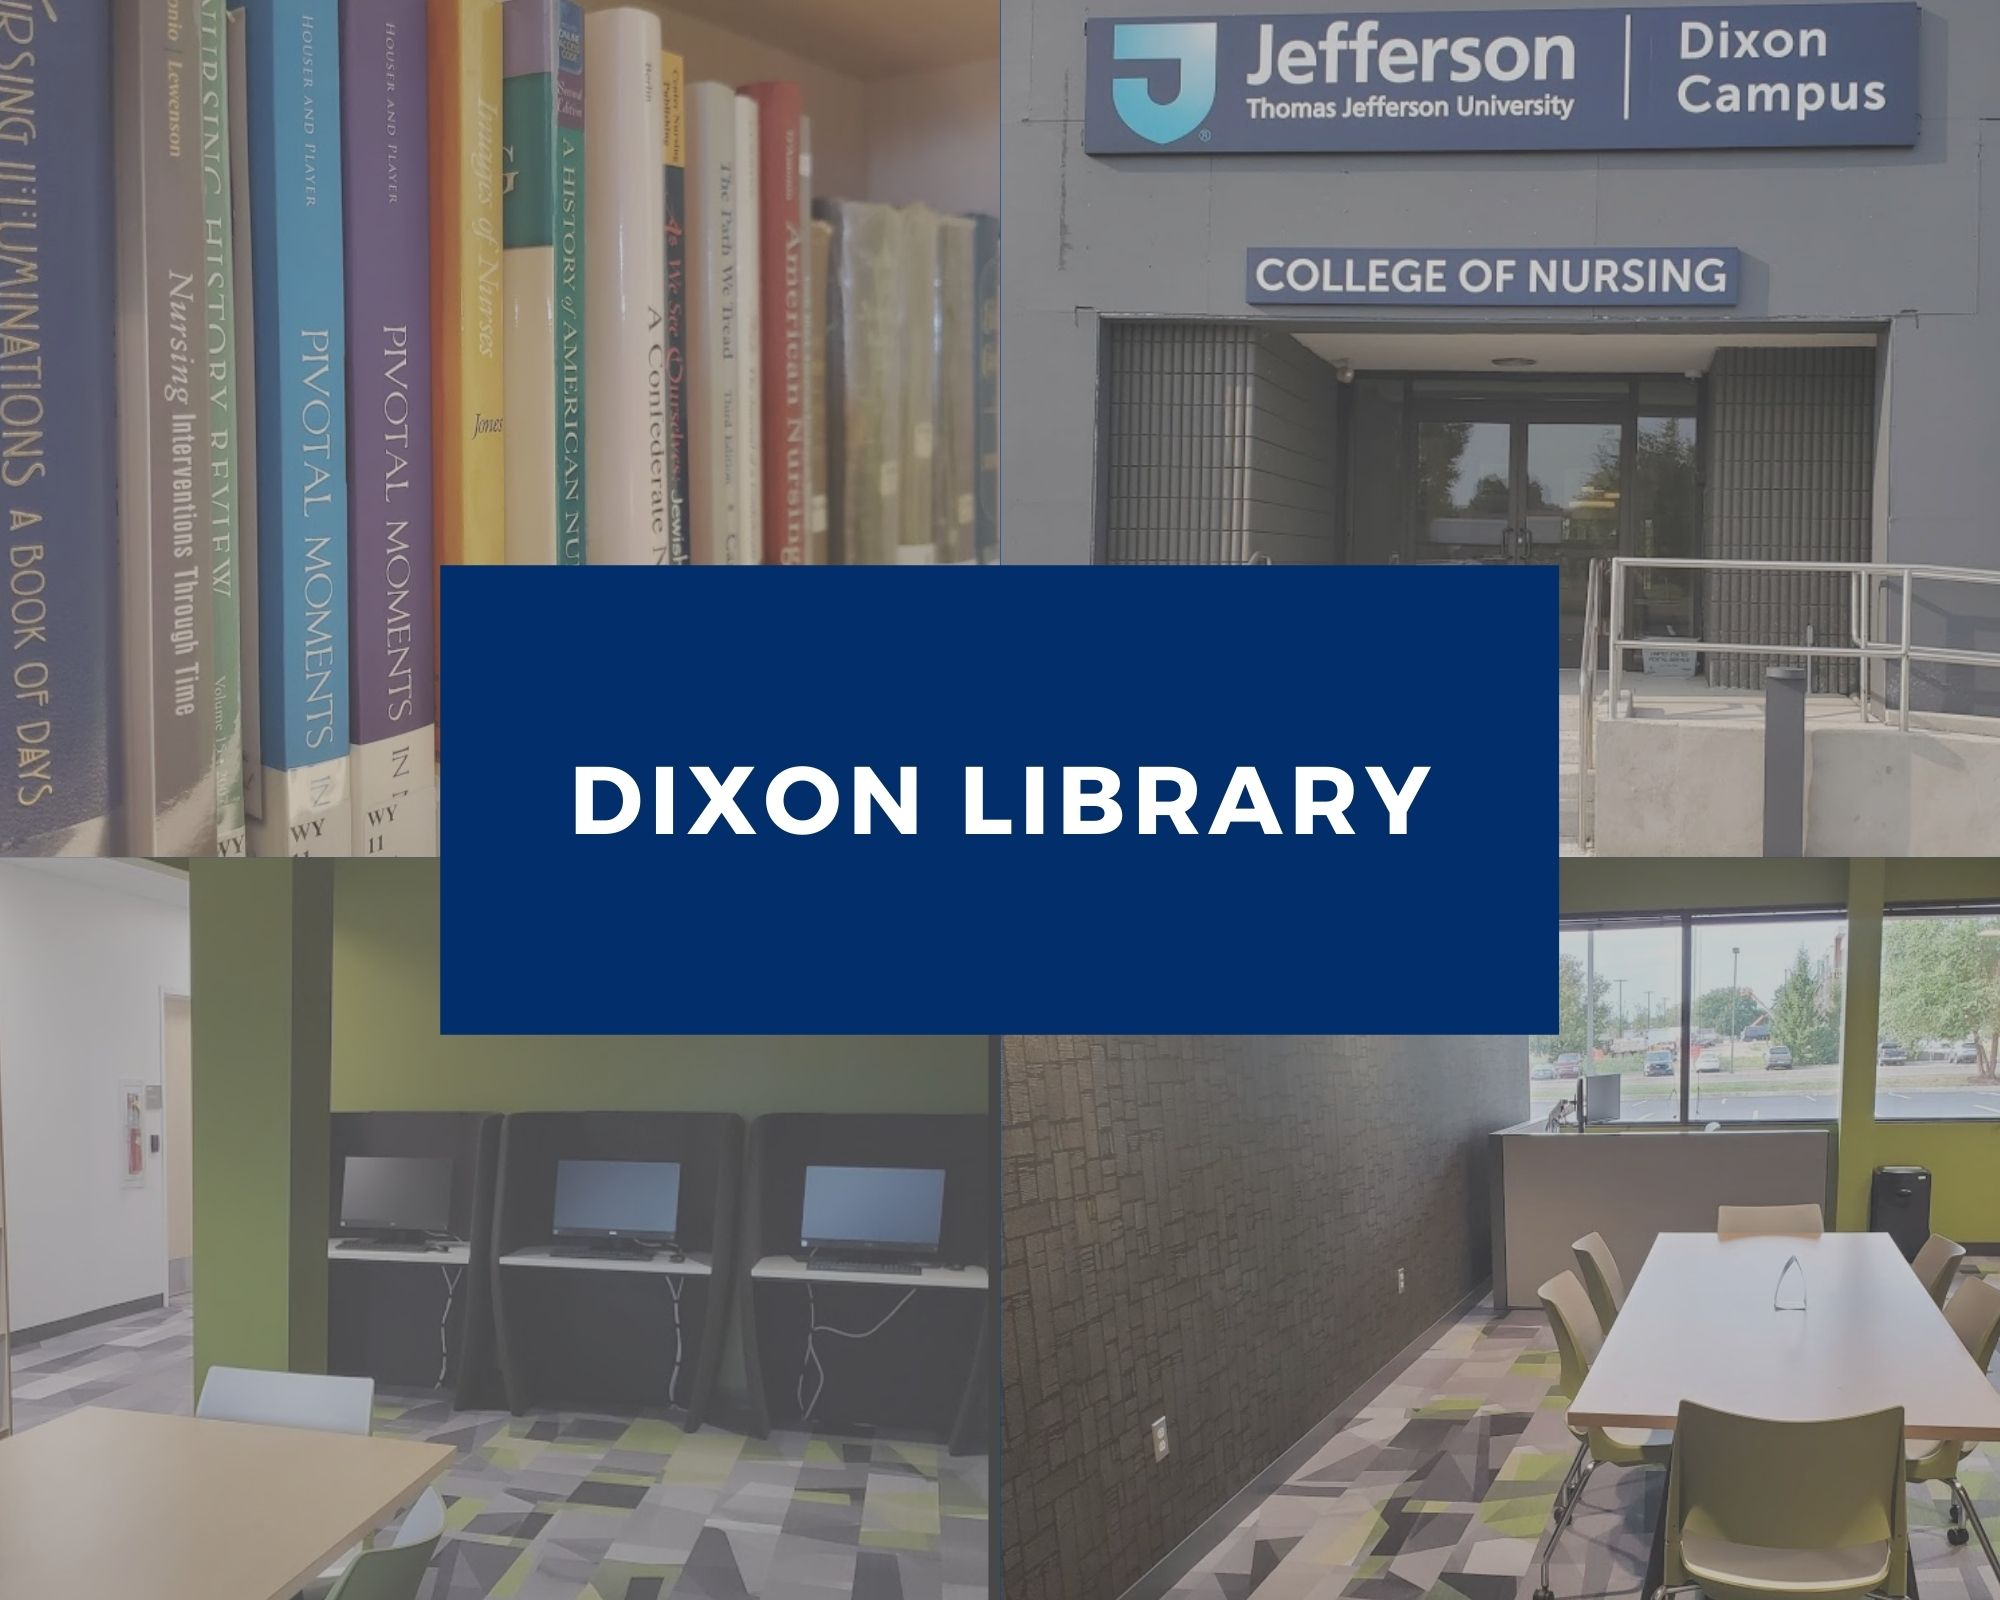 Images from Dixon Library